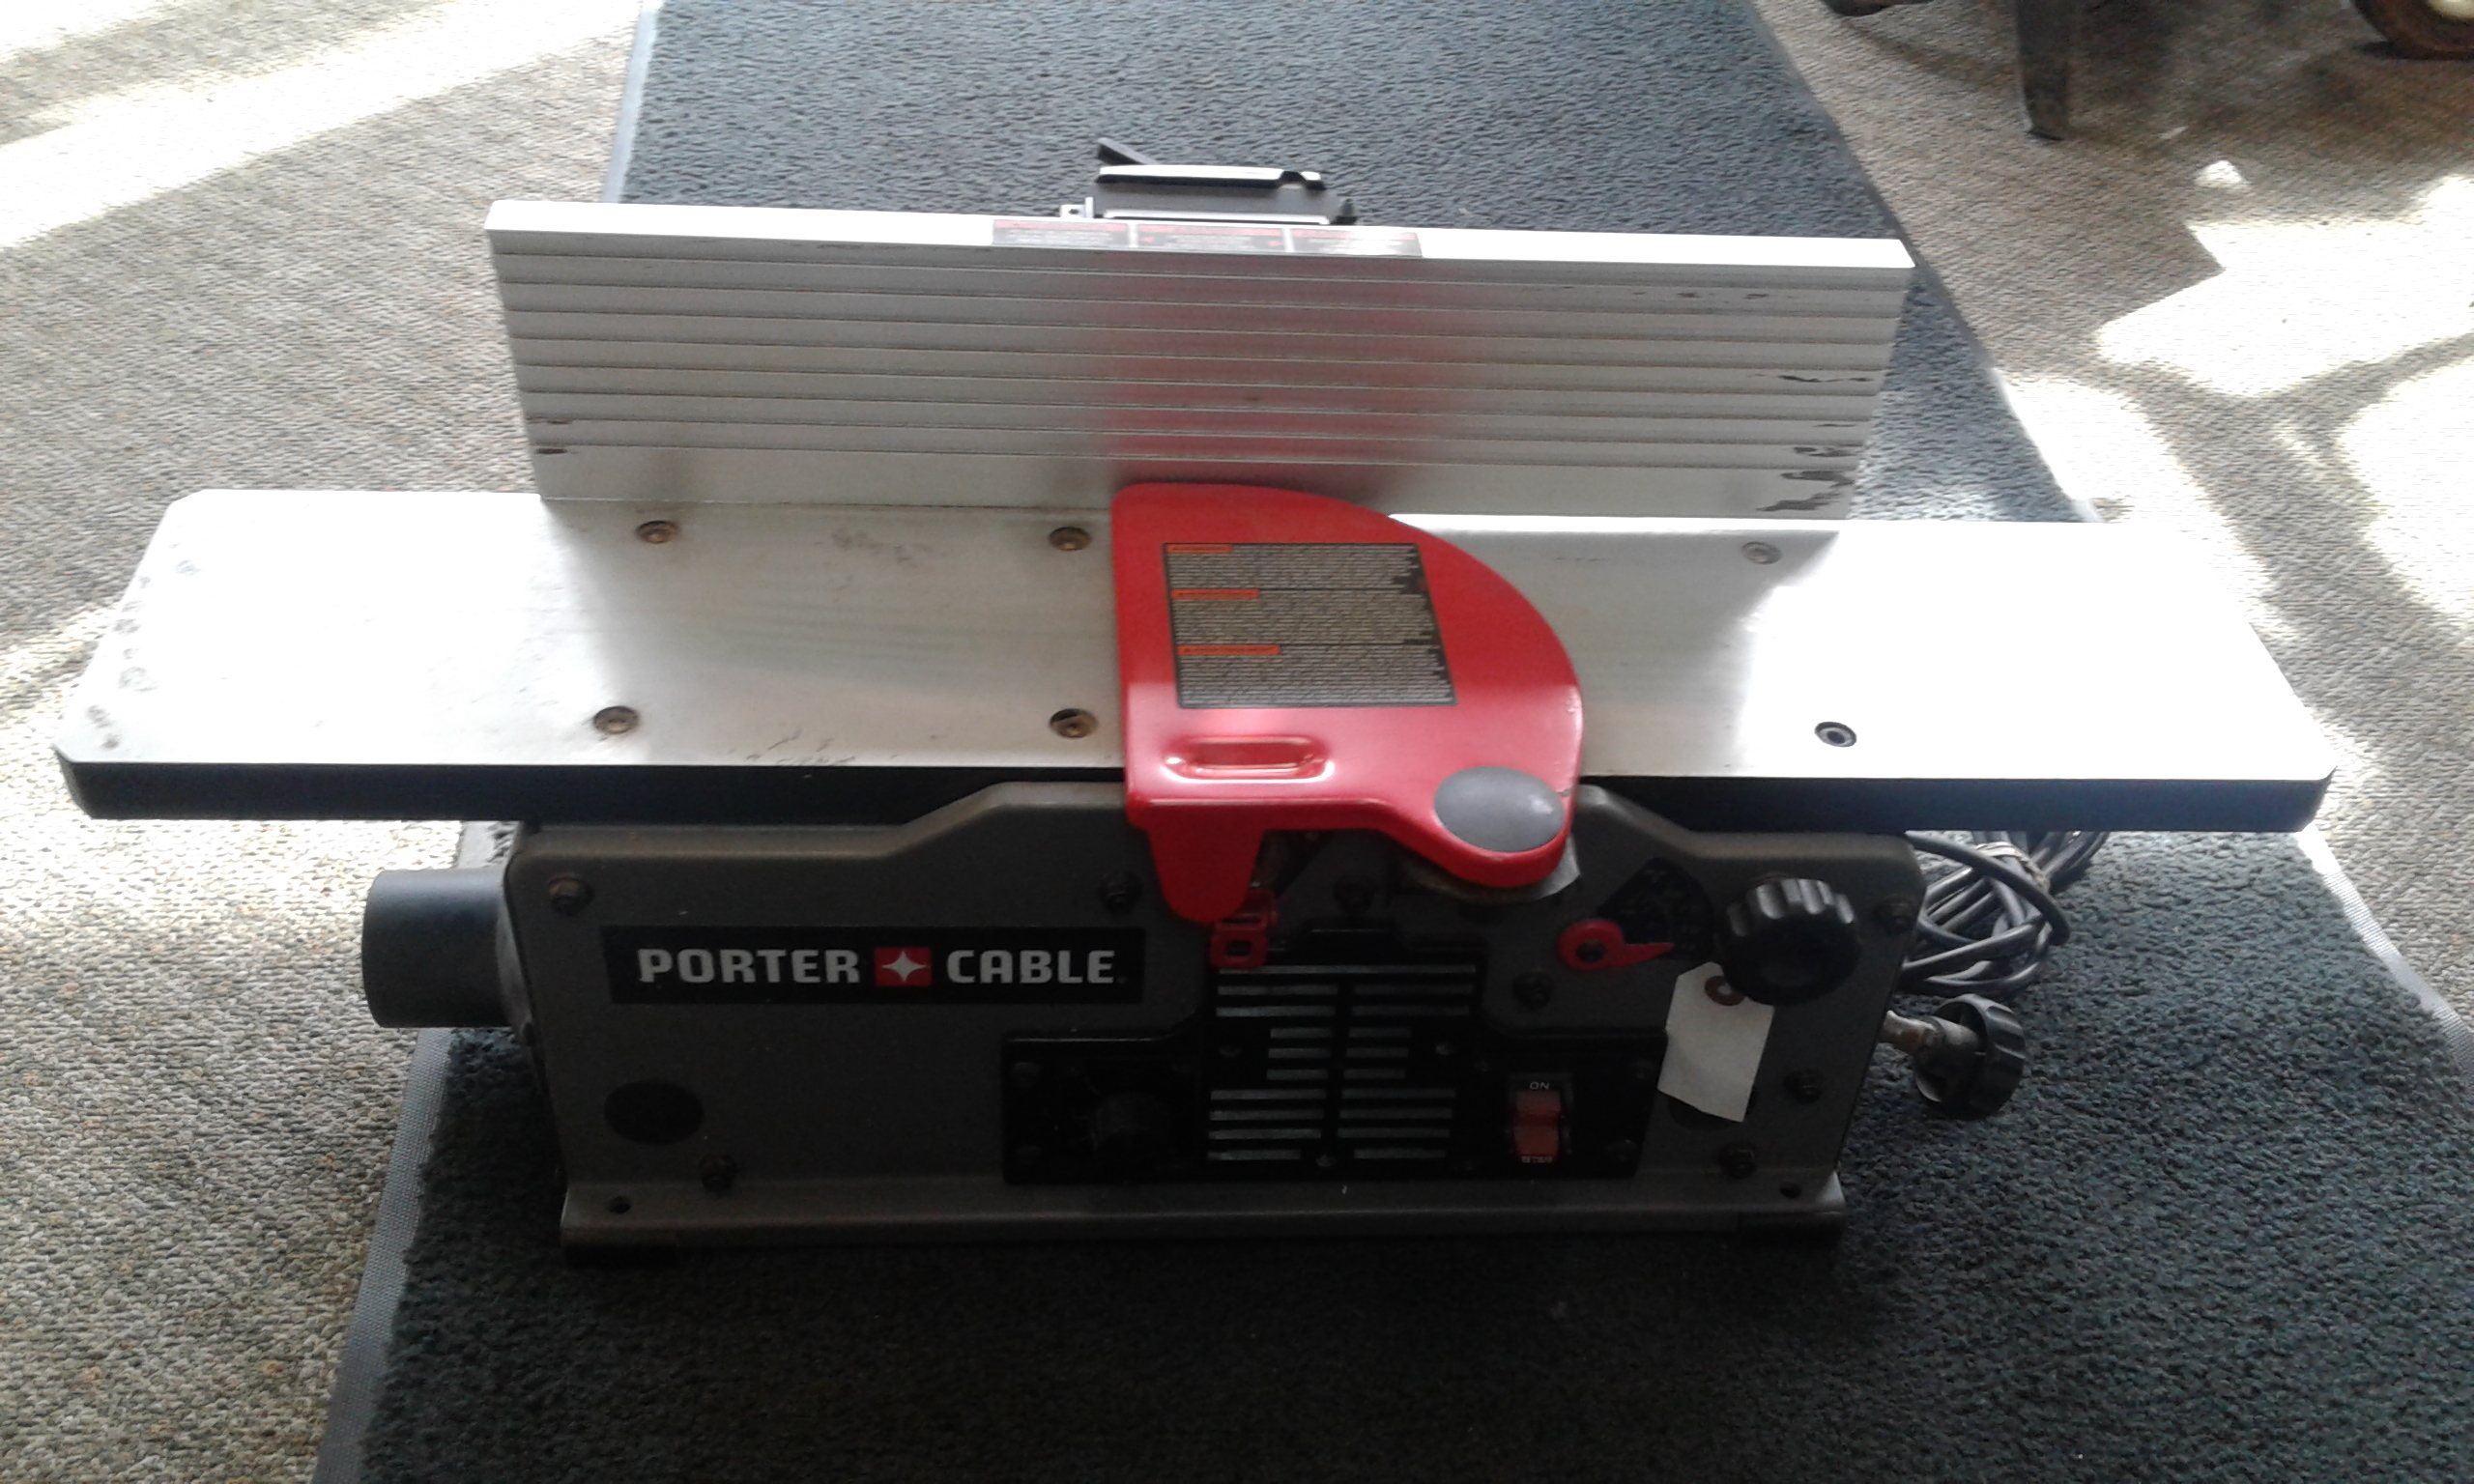 PORTER CABLE - SPEED BENCH JOINTER